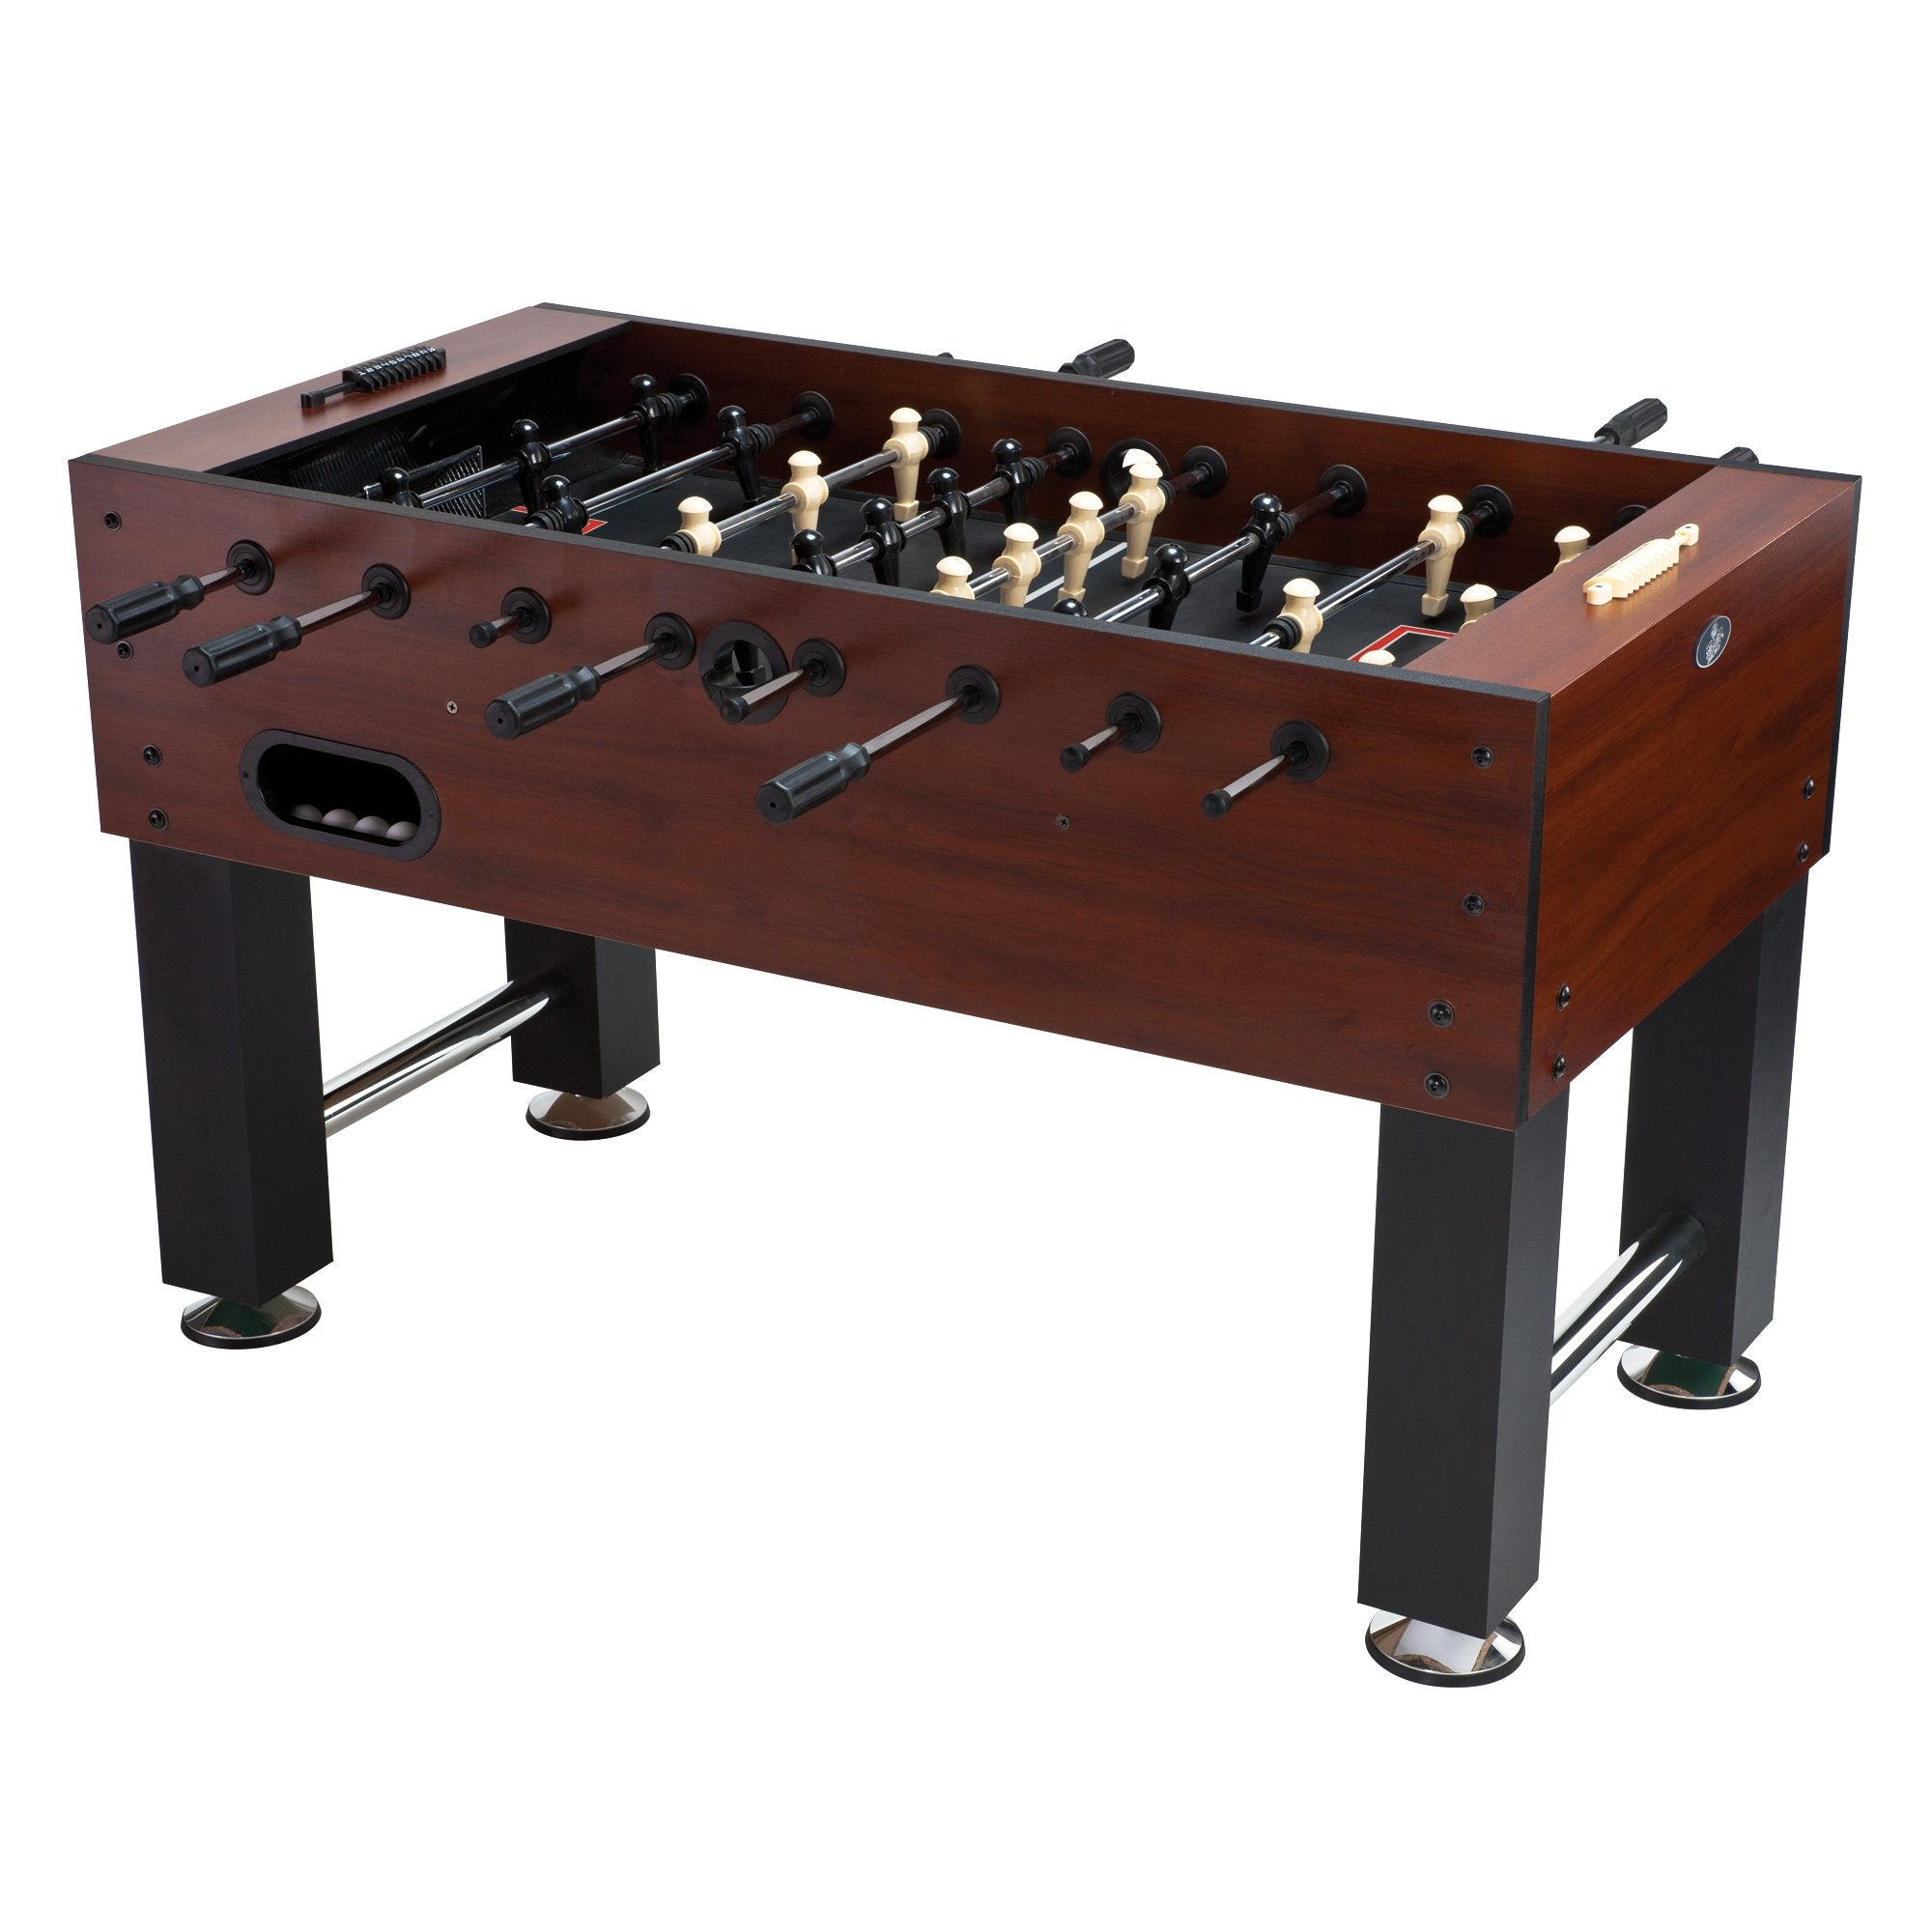 "Fat Cat Tirade MMXI 55"" Foosball Table - Gaming Blaze"